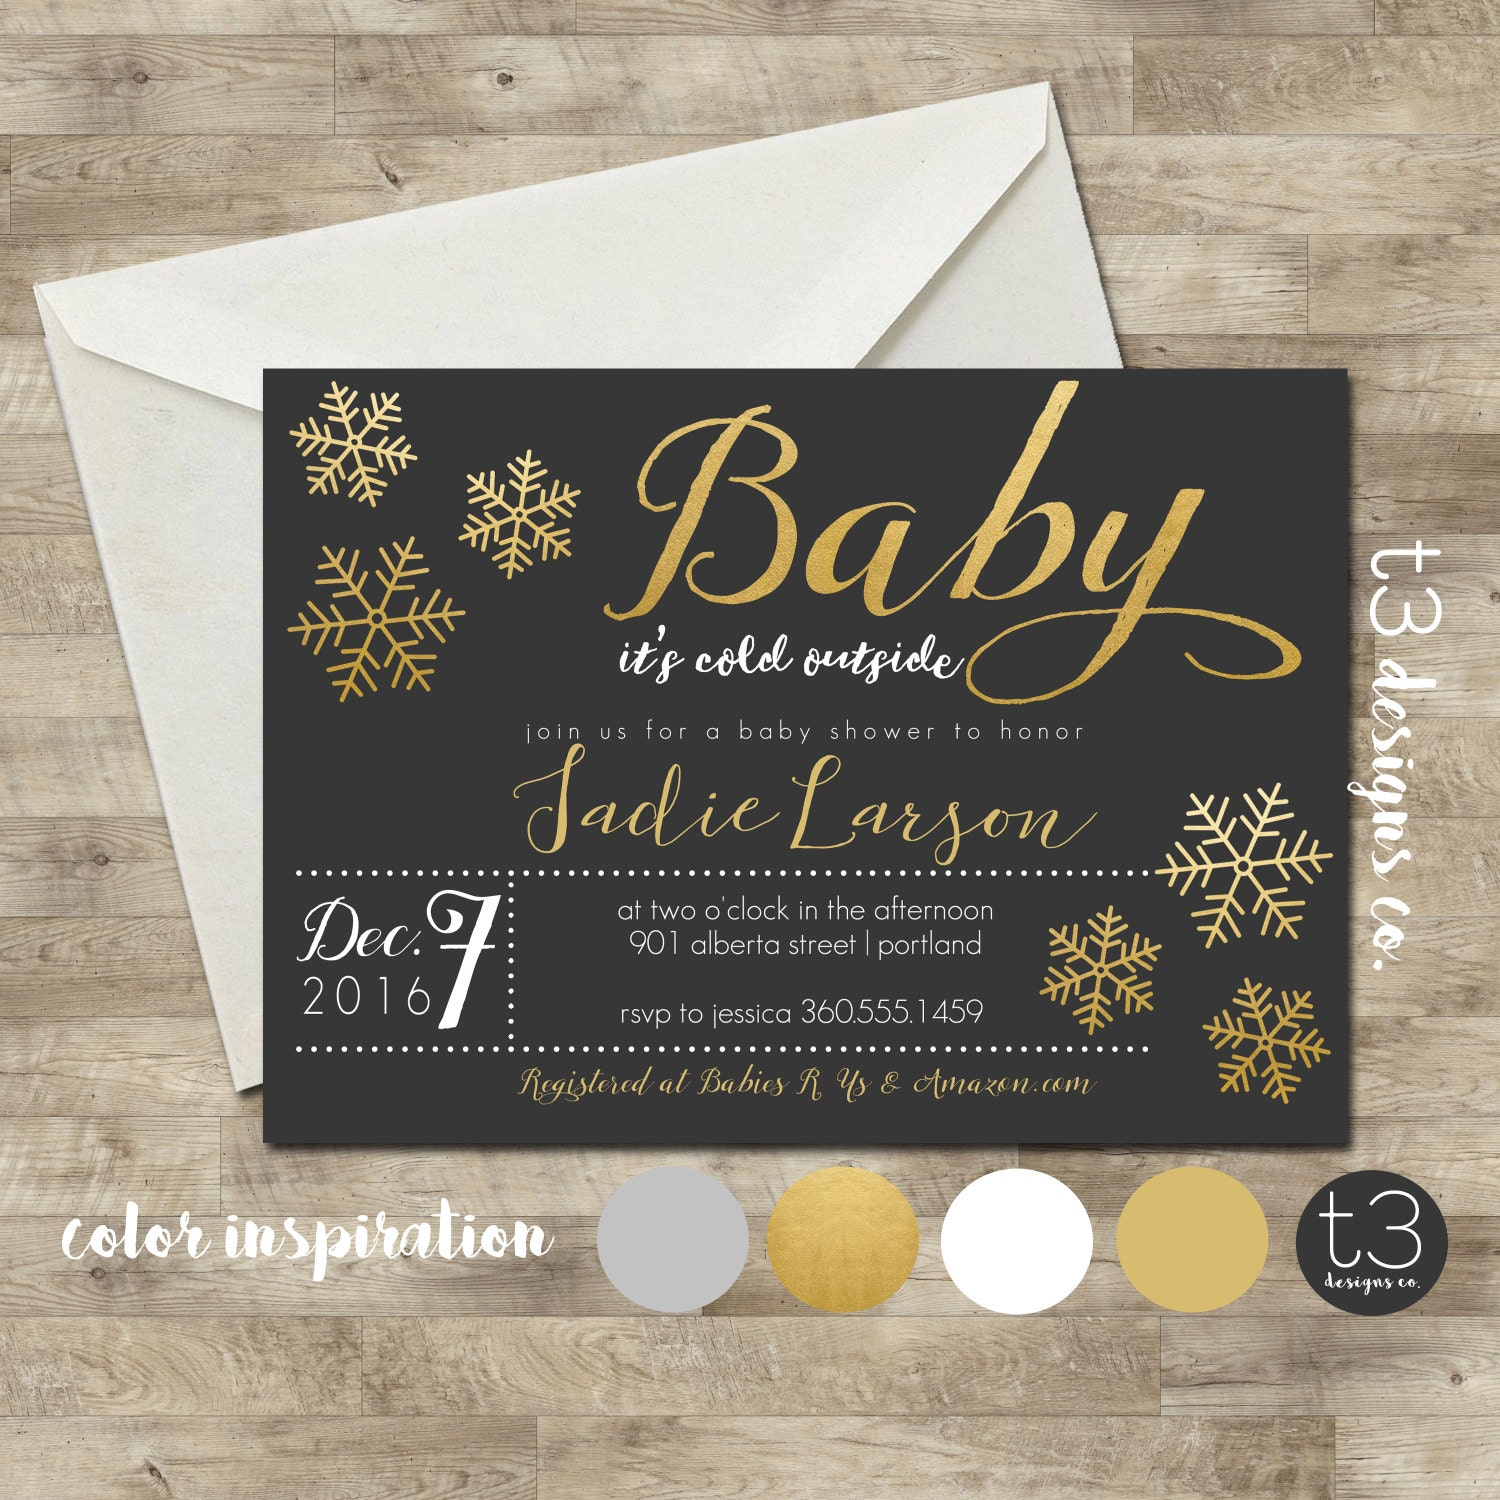 Winter Wonderland Baby Shower Invitations - Home Design Ideas